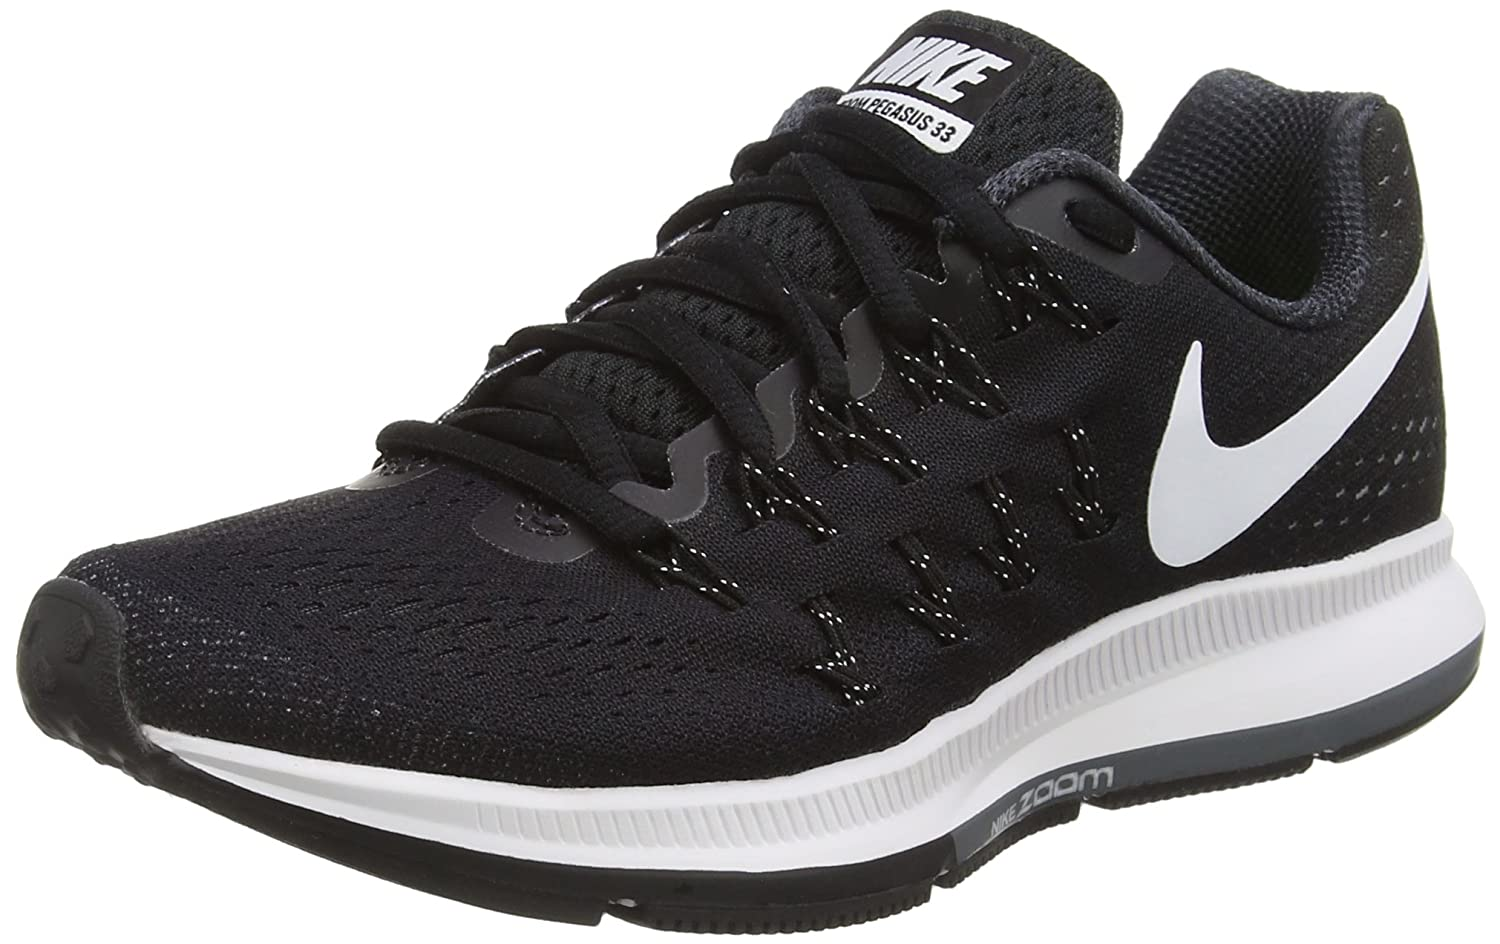 NIKE Women's Air Zoom Pegasus 33 B014EC8JKW 12 B(M) US|Black/Cool Grey/Wolf Grey/White